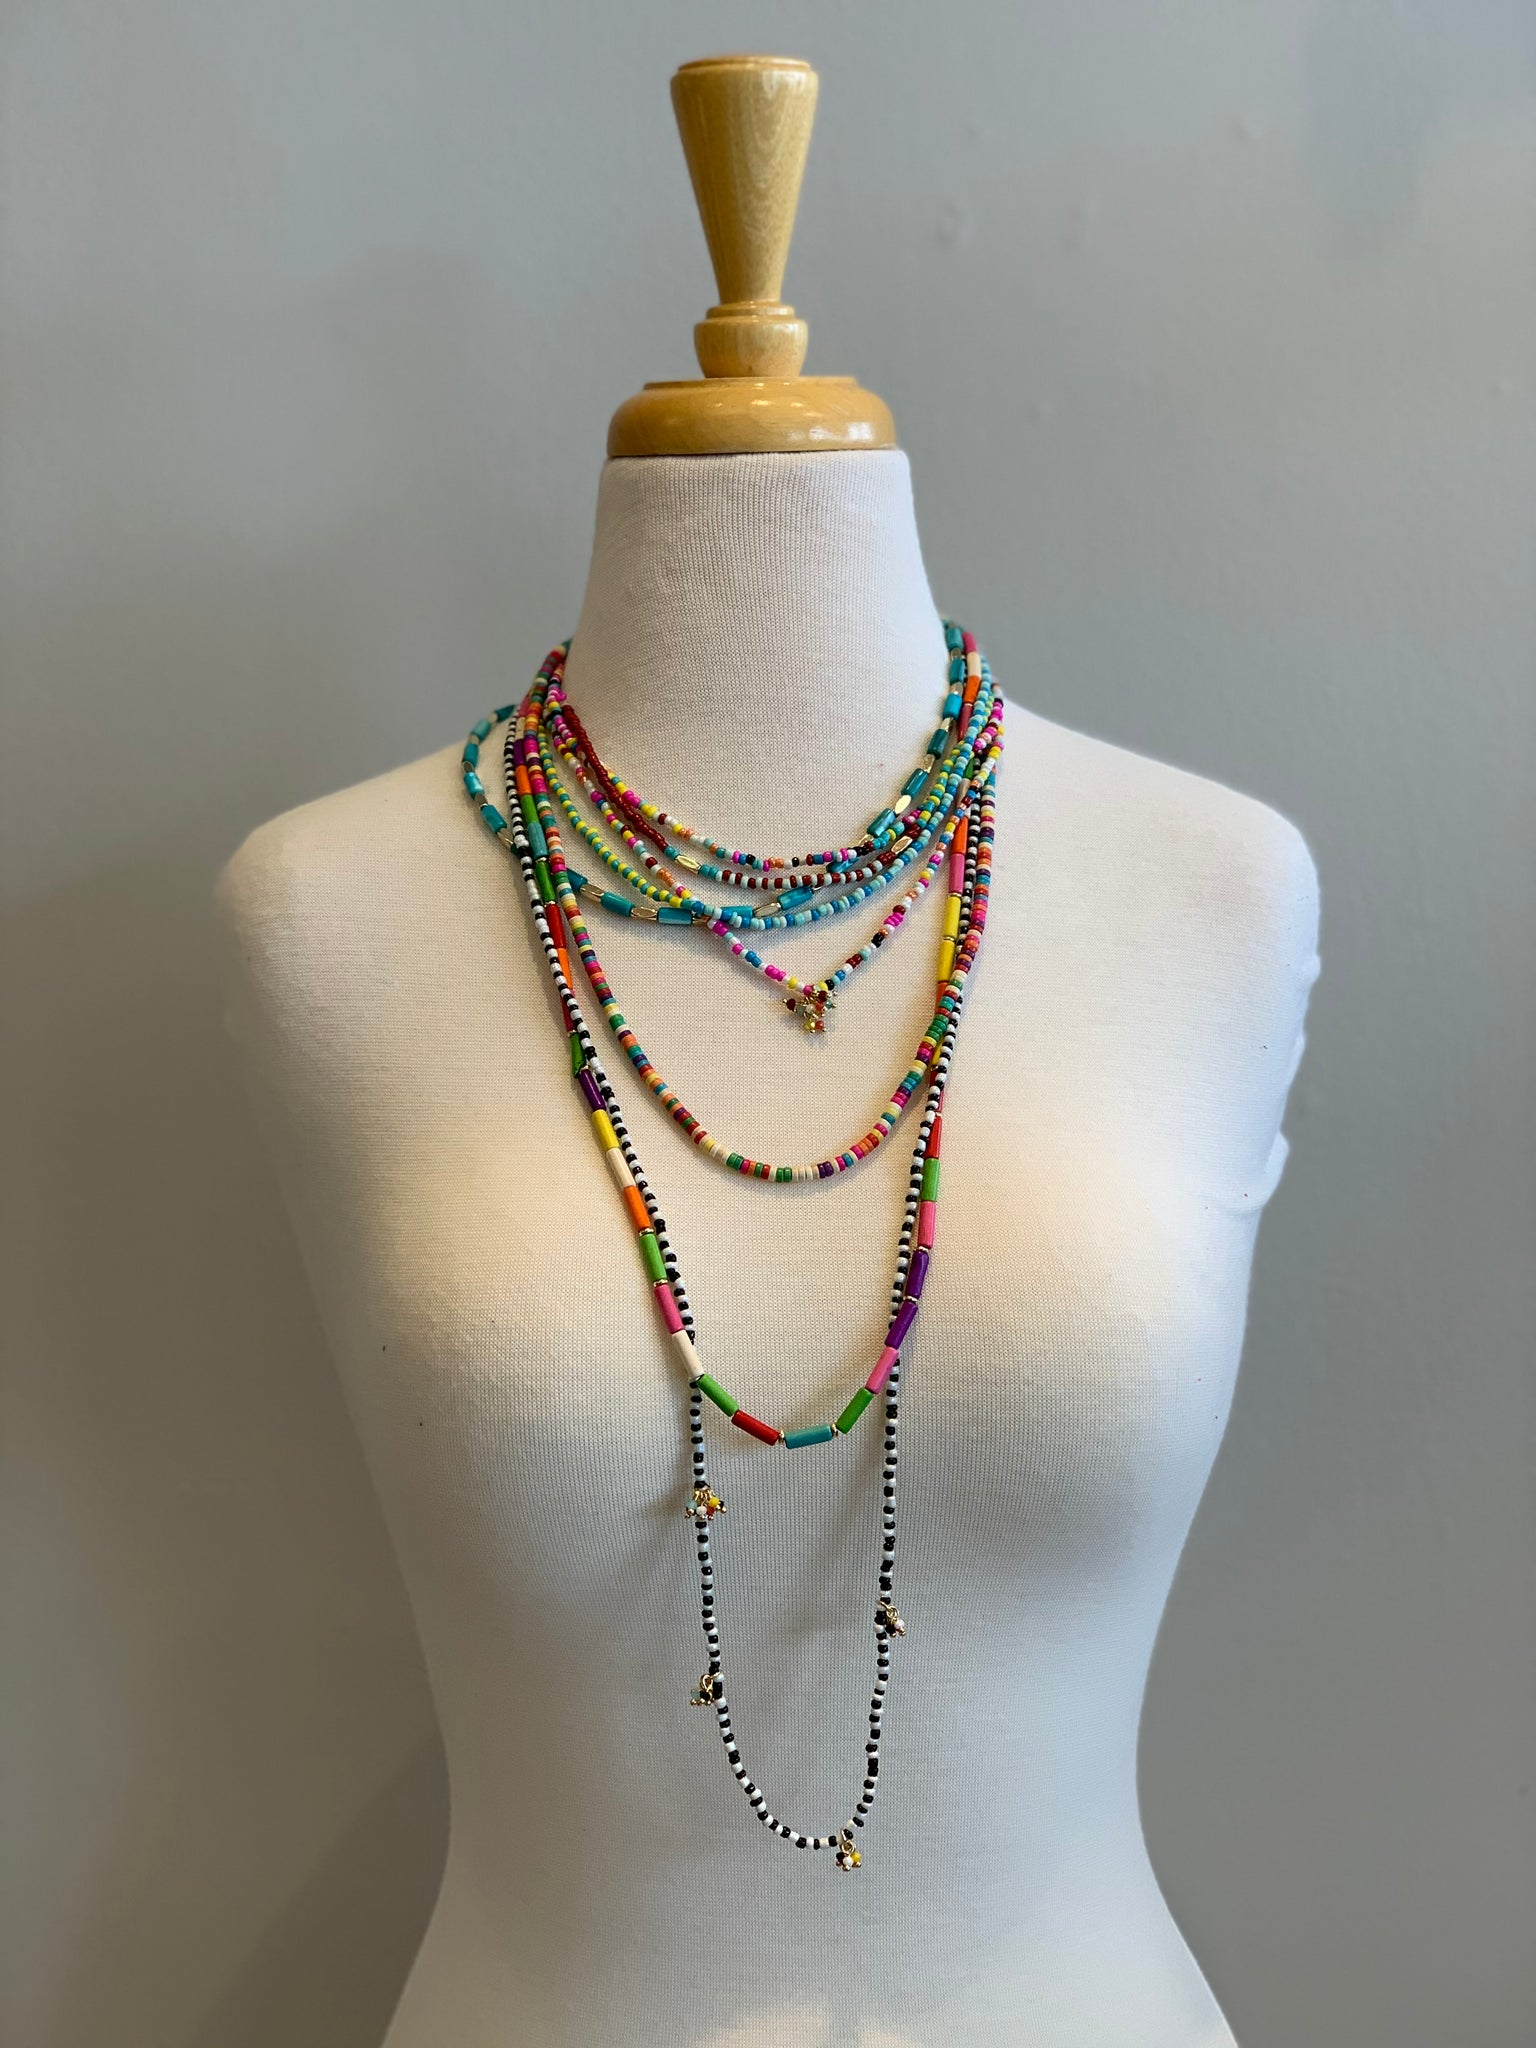 RUSH Fiesta Layered Necklace - Showroom56